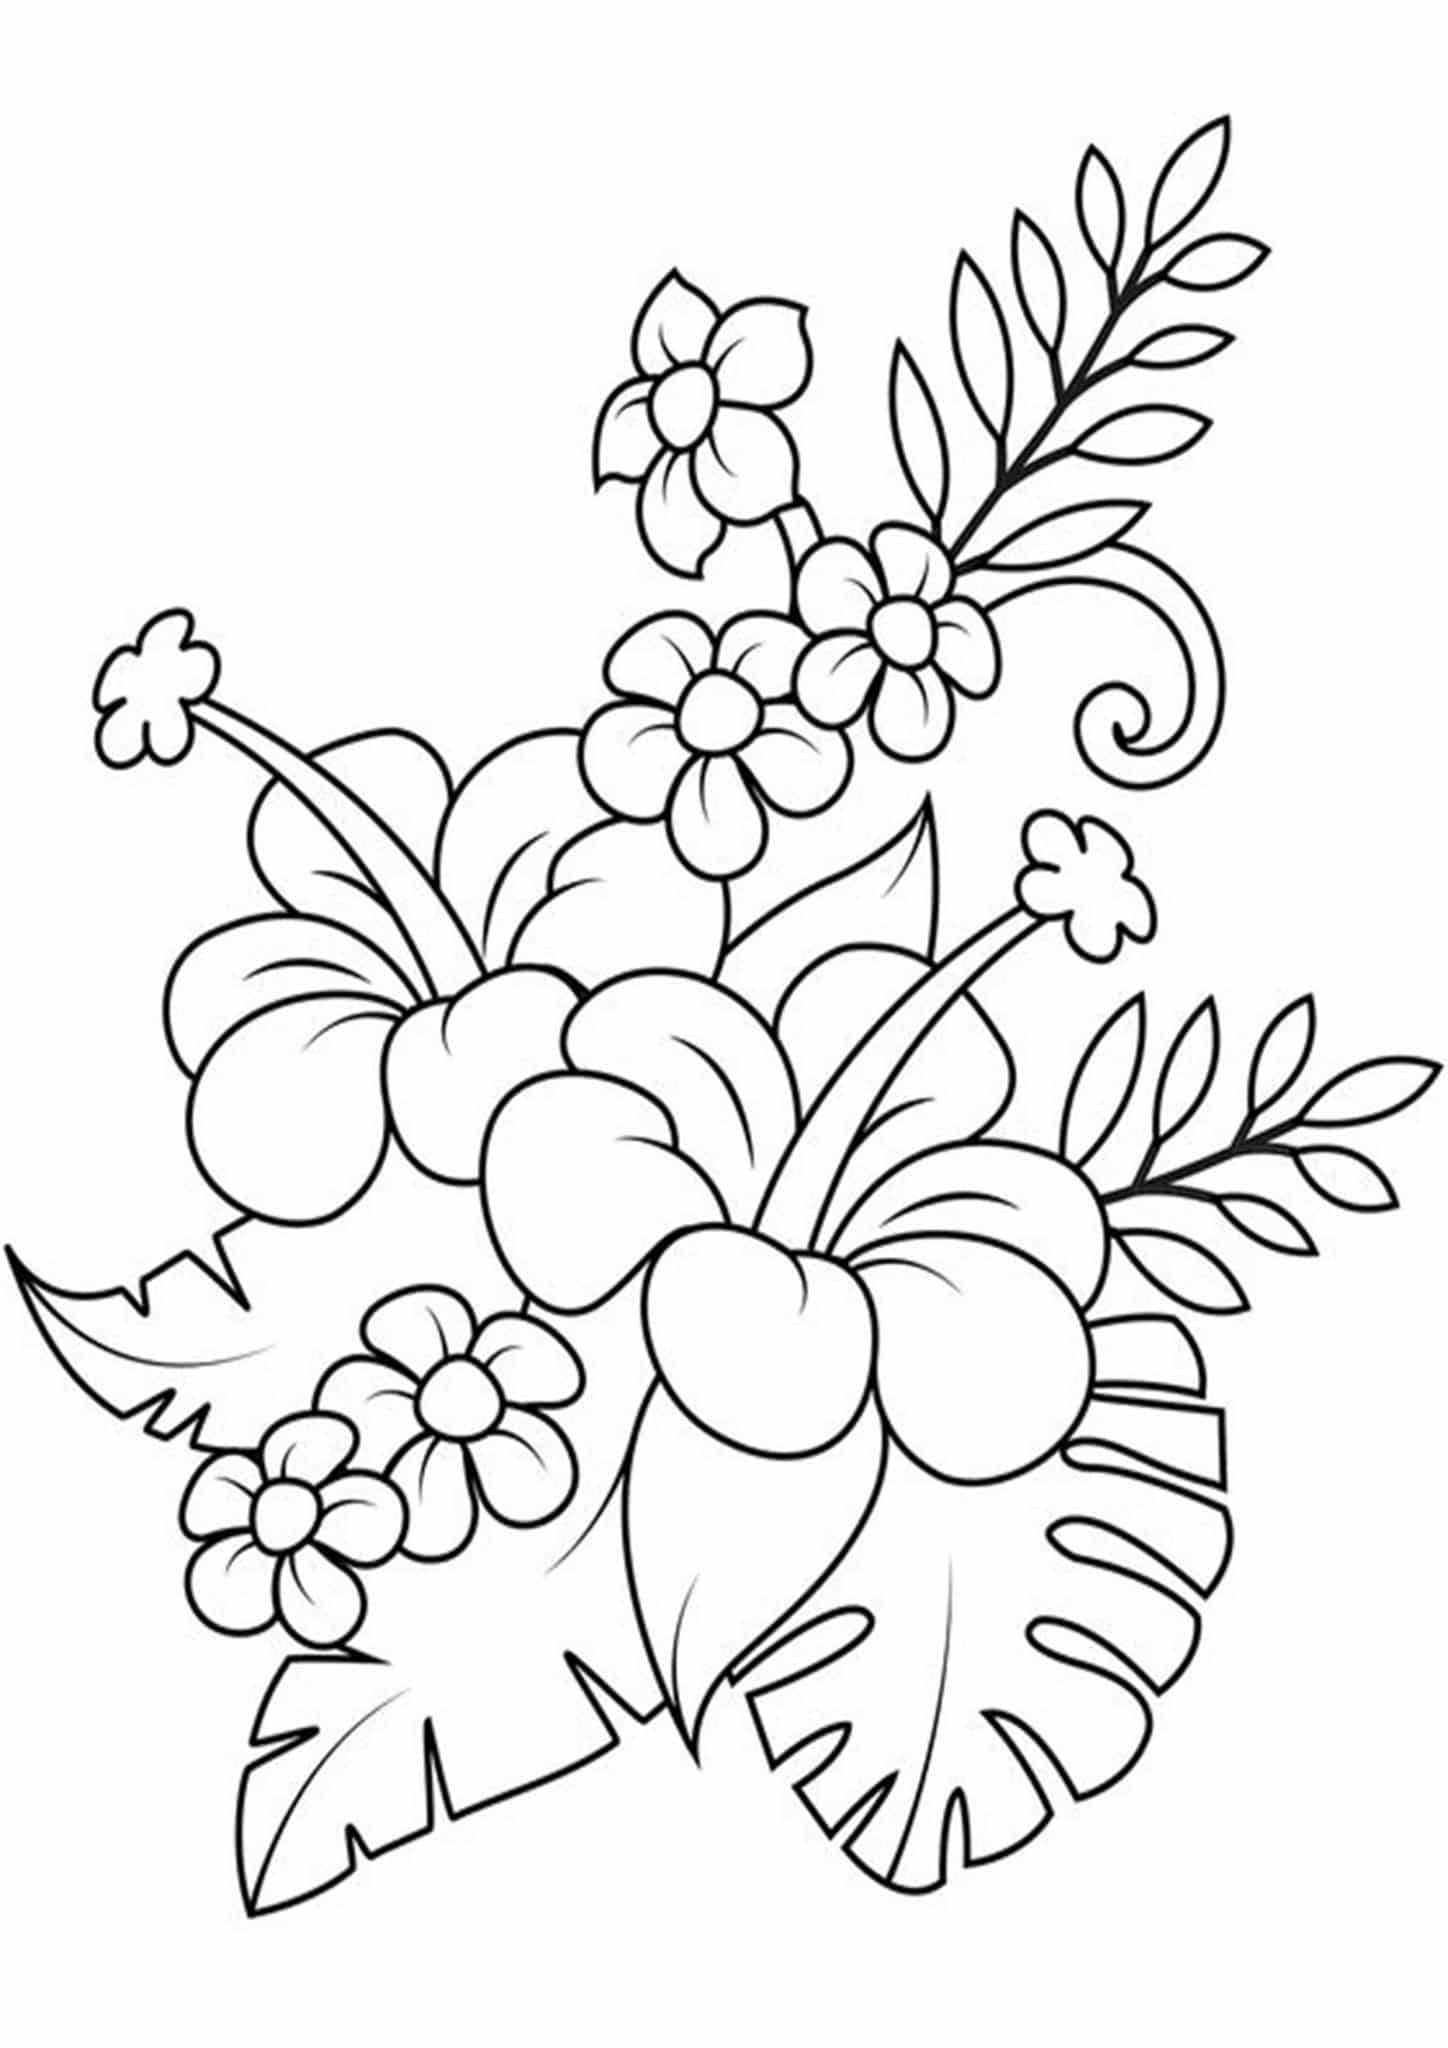 easy flower coloring pages free easy to print flower coloring pages tulamama coloring flower pages easy